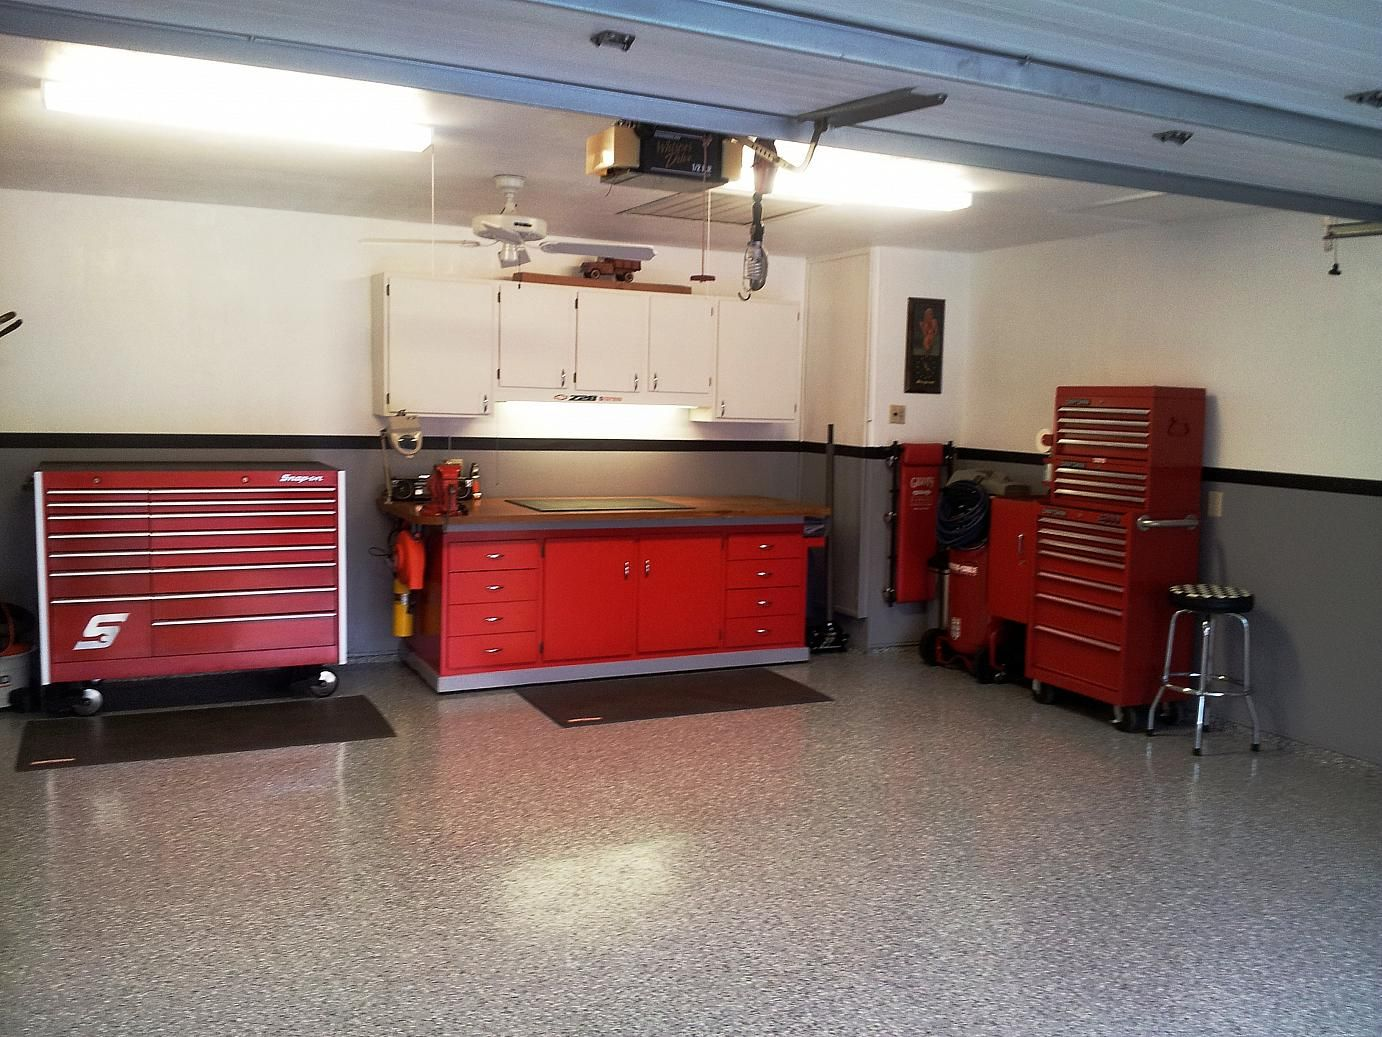 25 brilliant garage wall ideas design and remodel on interior wall colors ideas id=81920